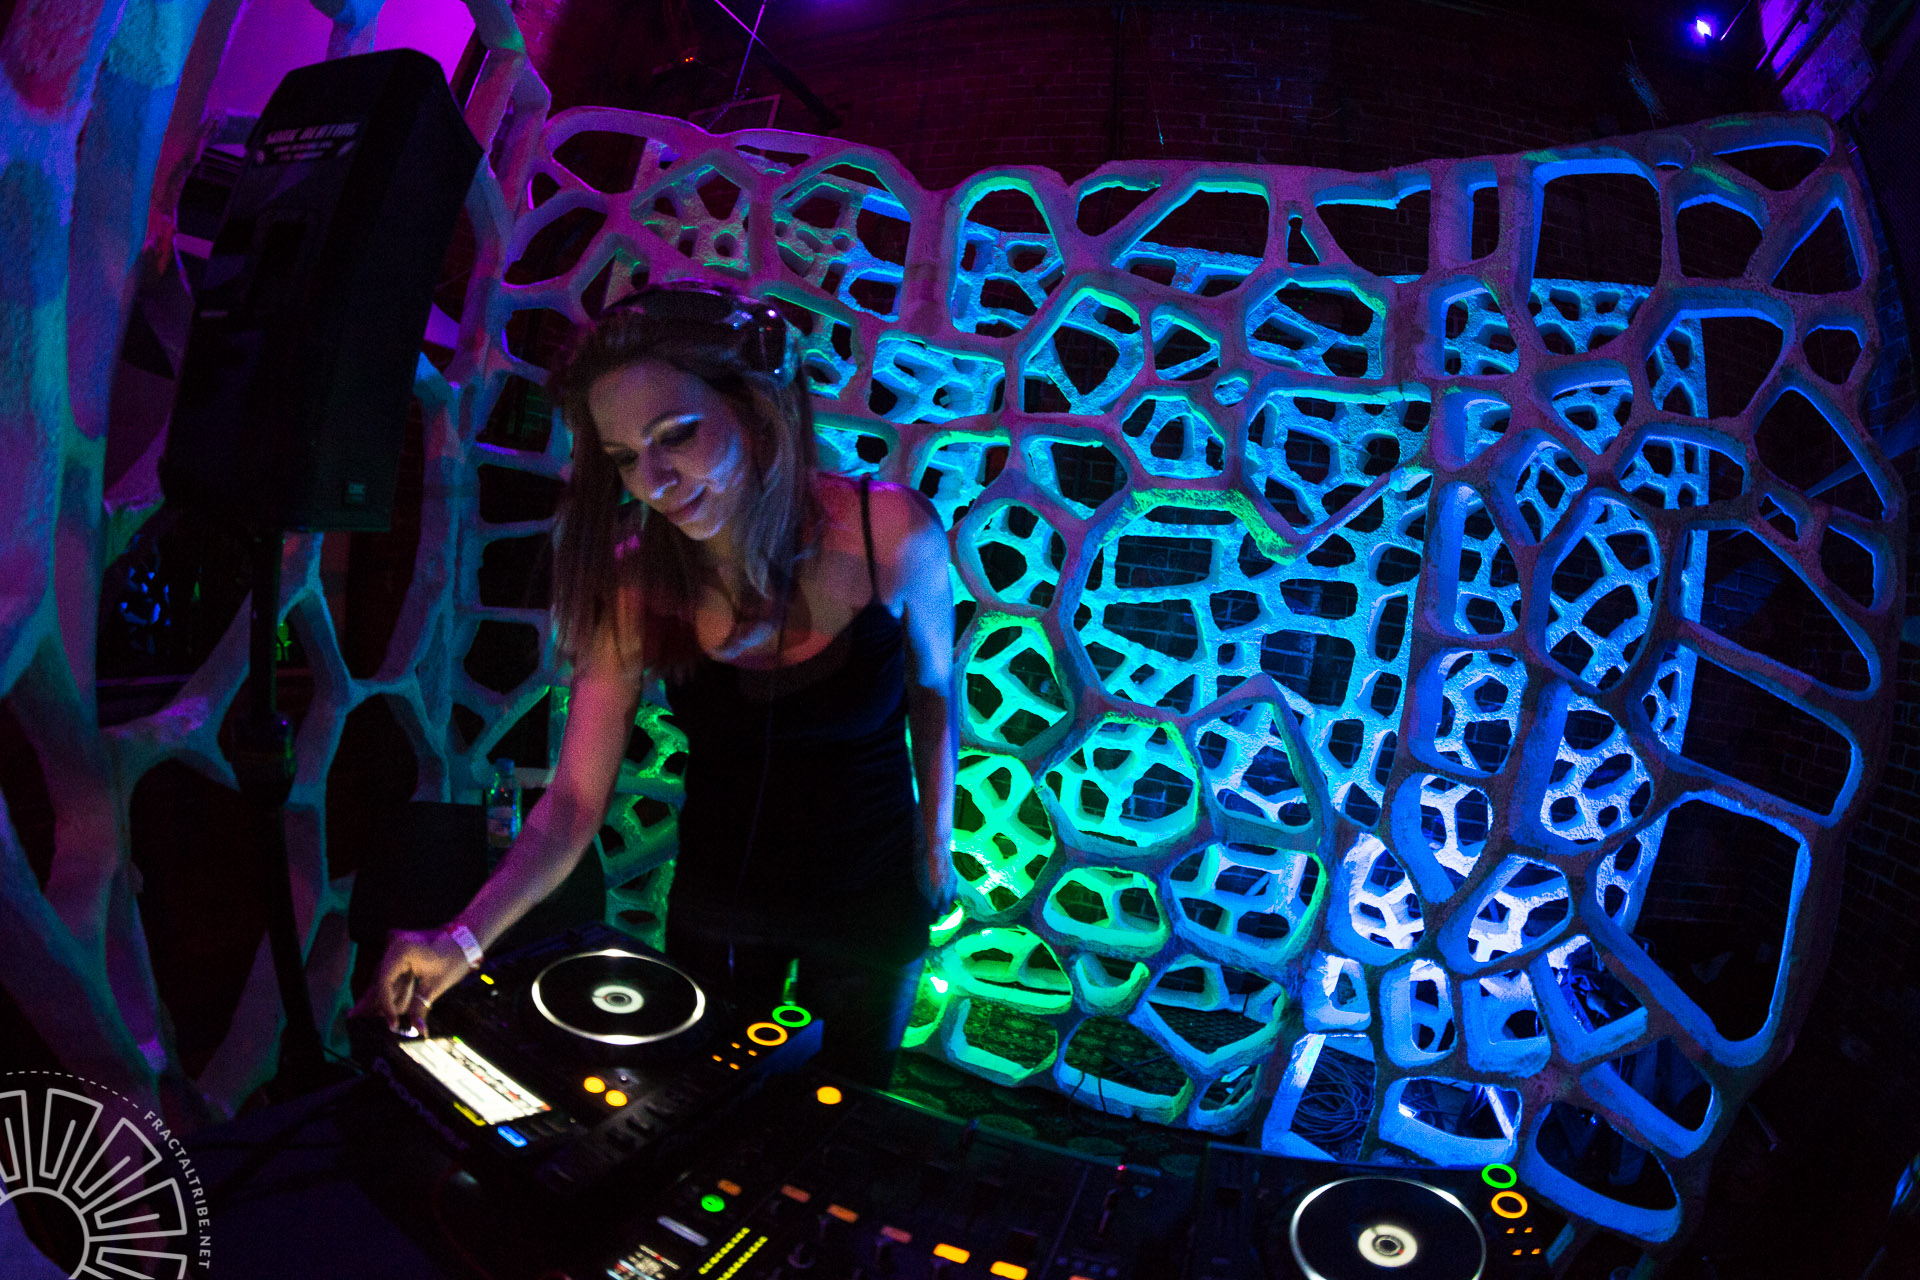 Ju Lee @ Fractaltribe presents Year of the Fractilian 12/31/2014